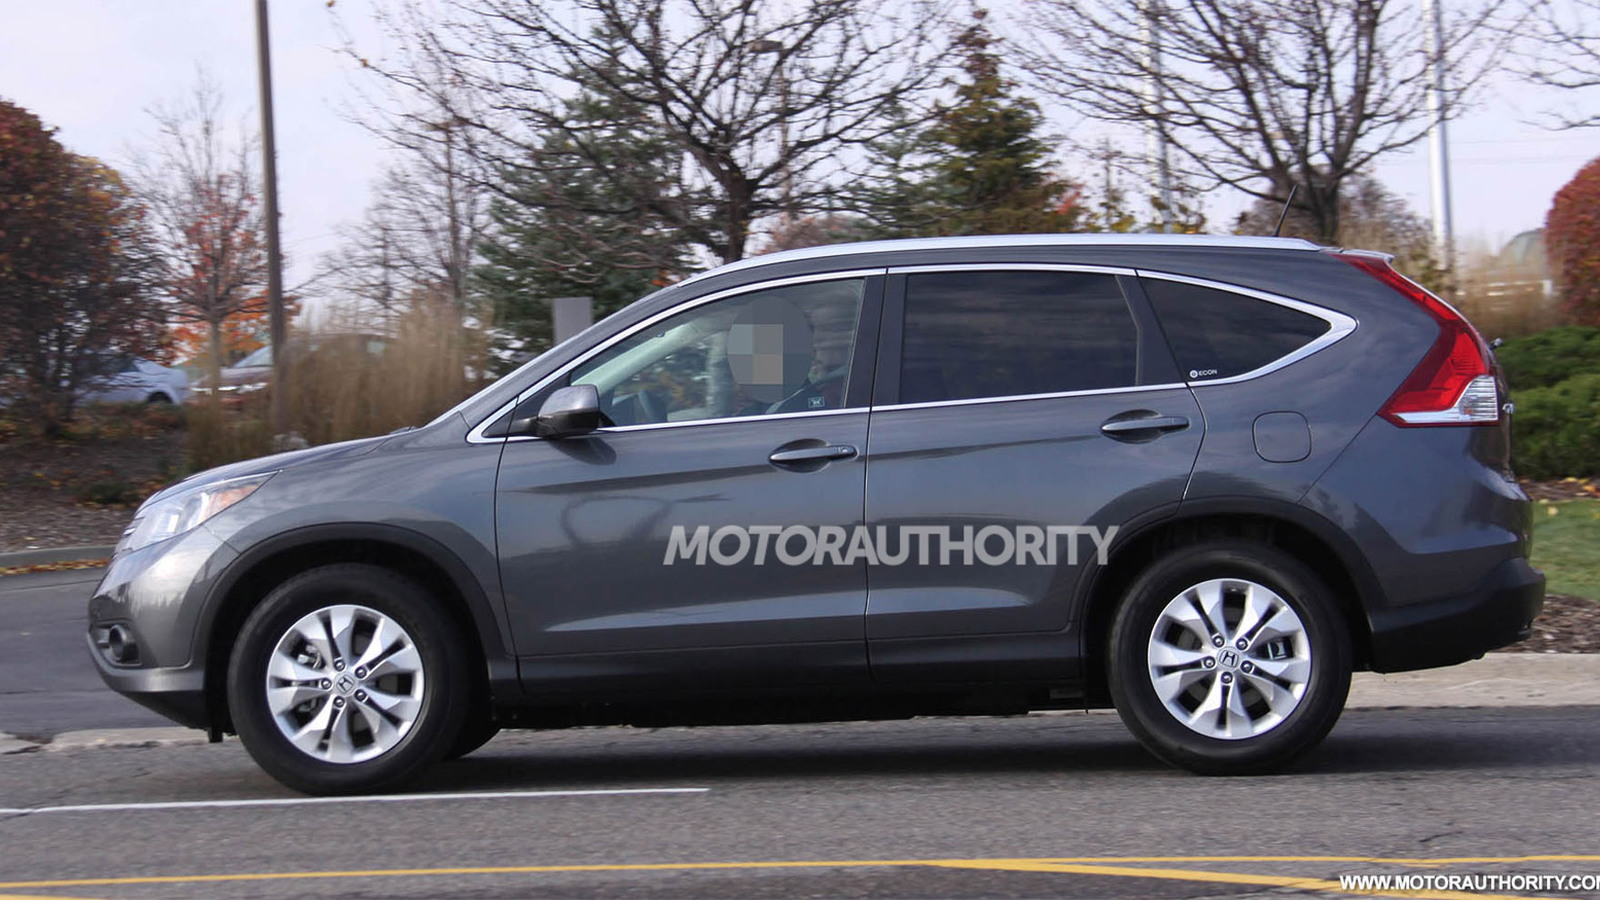 2012 Honda CR-V spy shots